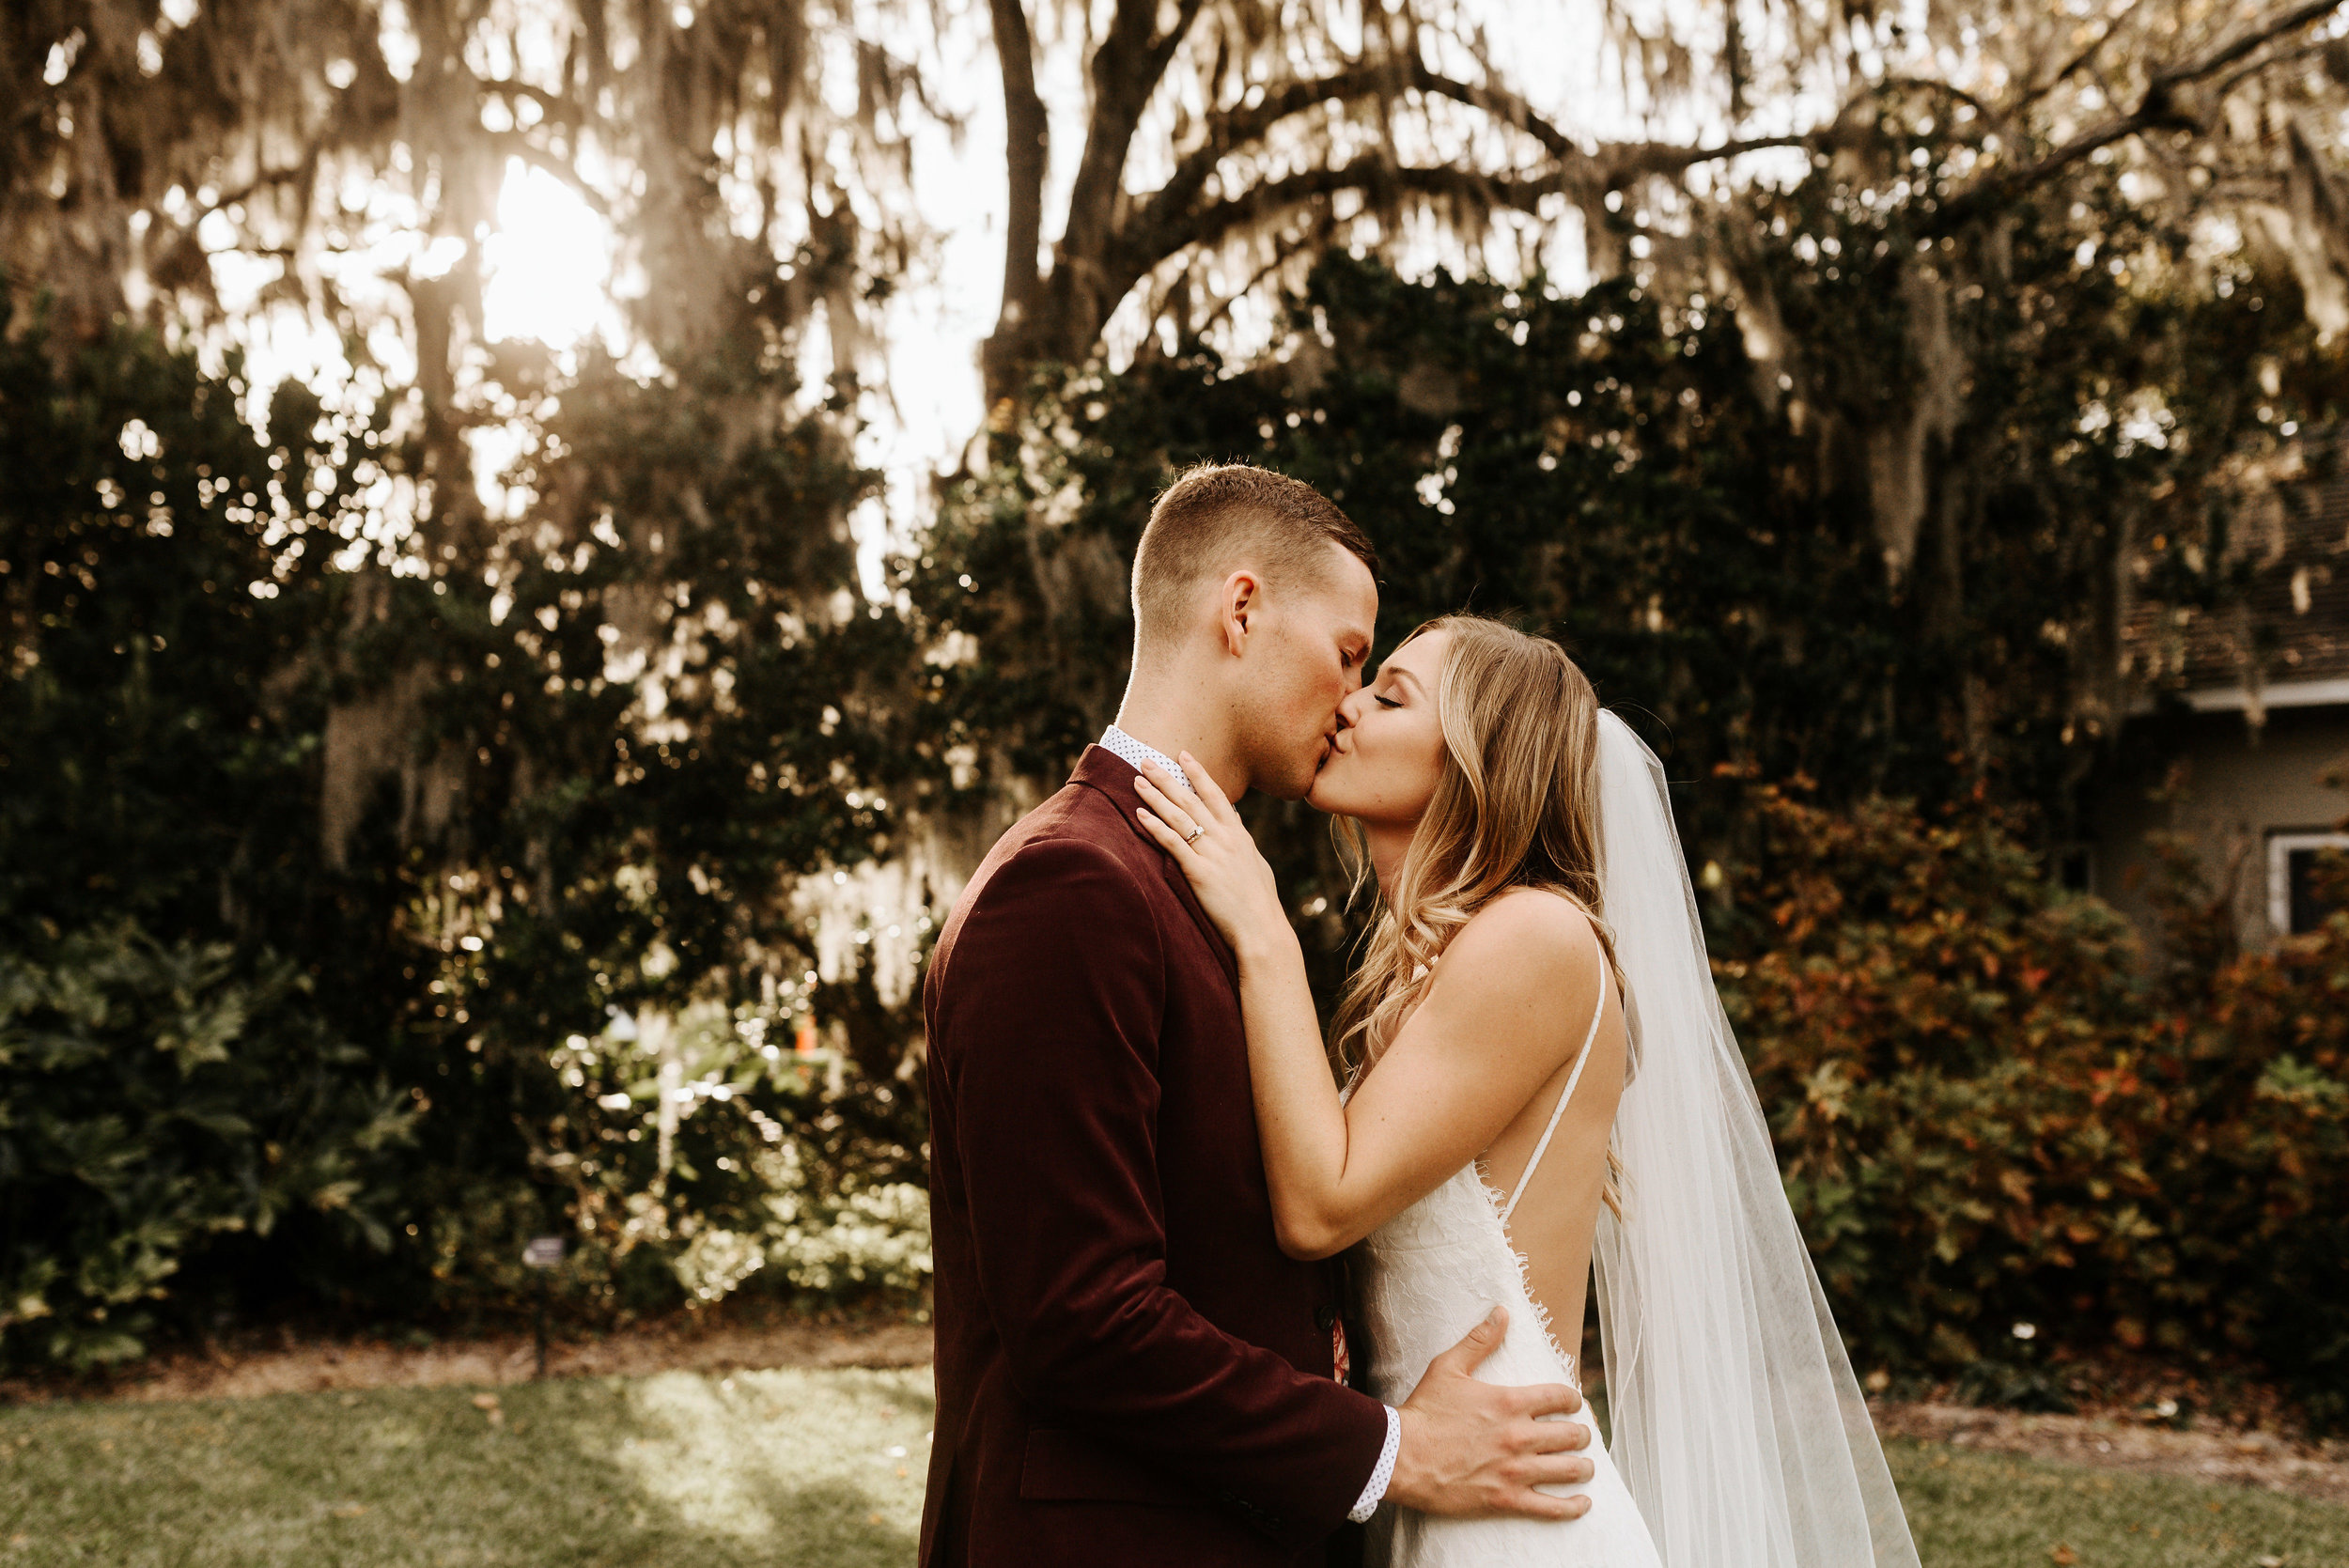 Kourtney_Sean_Savannah_Georgia_Wedding_Wormsloe_Histroic_Site_Coastal_Georgia_Botanical_Gardens_Photography_by_V_4199.jpg